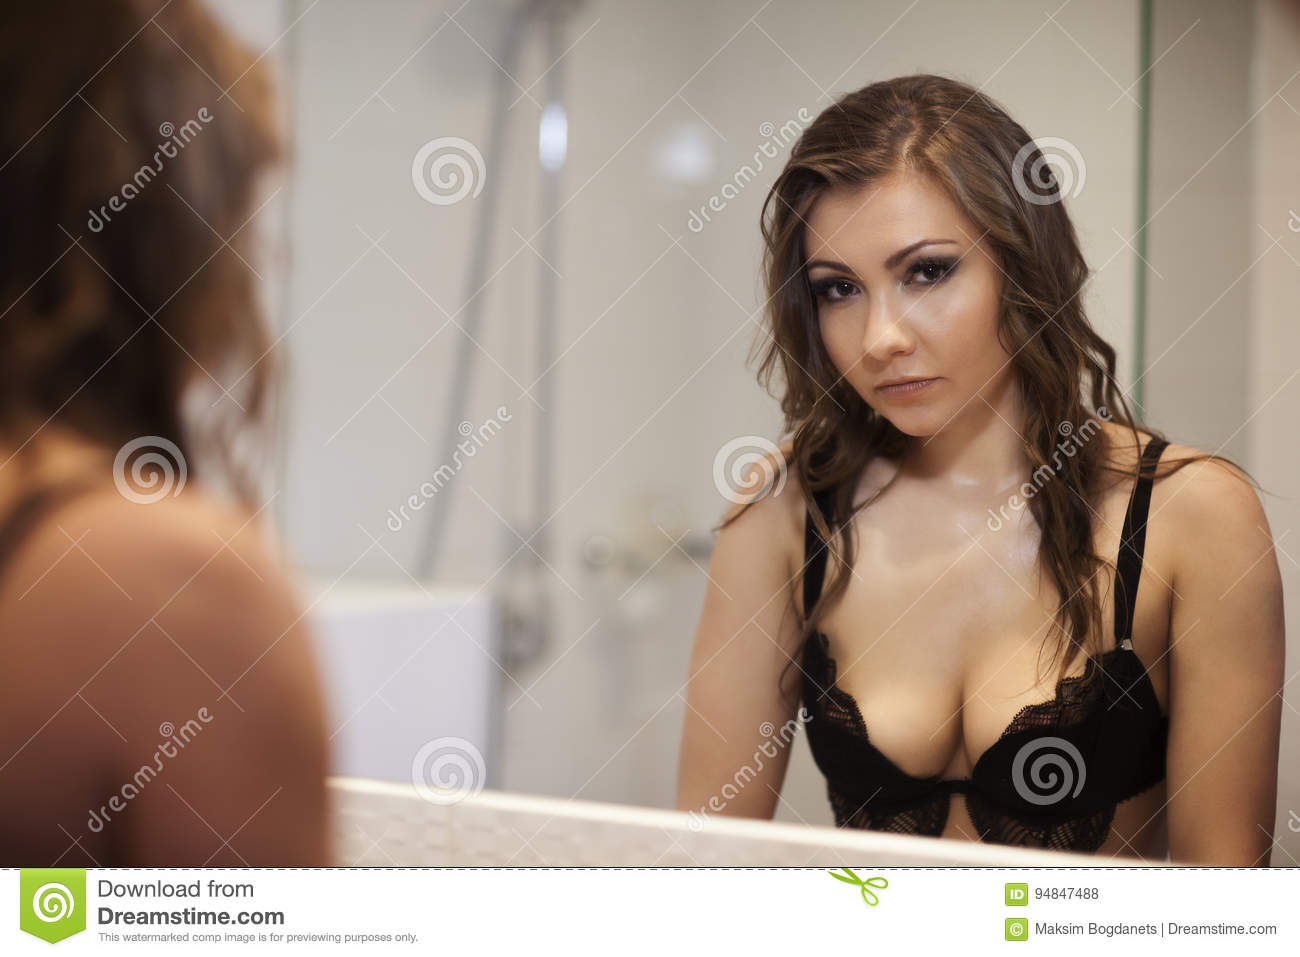 Erotic pictures of women looking in mirrors are